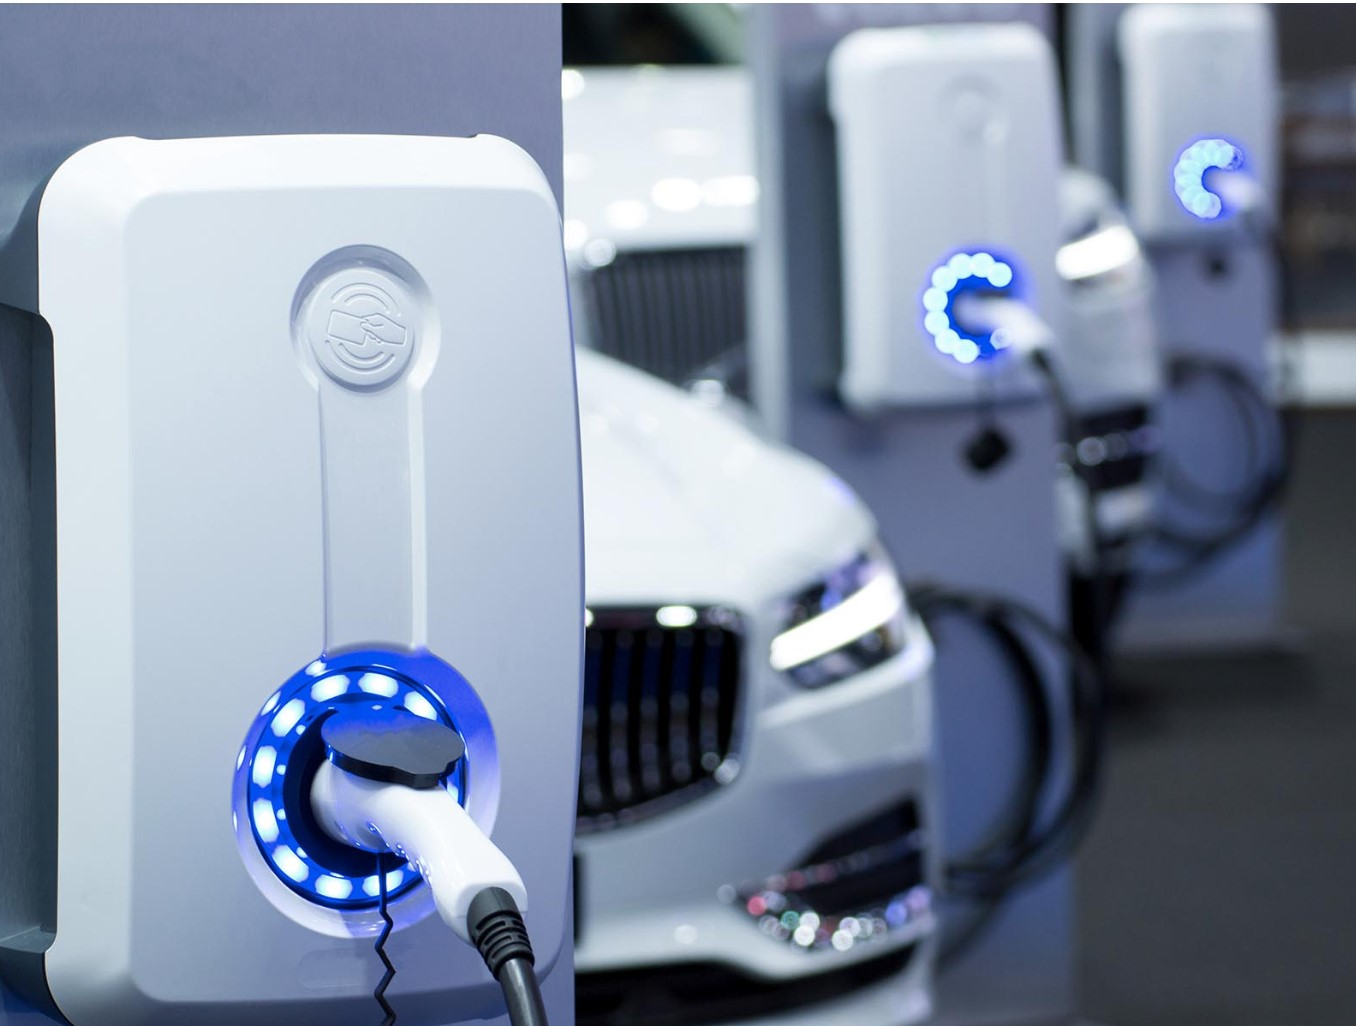 HUBER+SUHNER Take The Wheel, Sparking Electric Vehicle Innovation